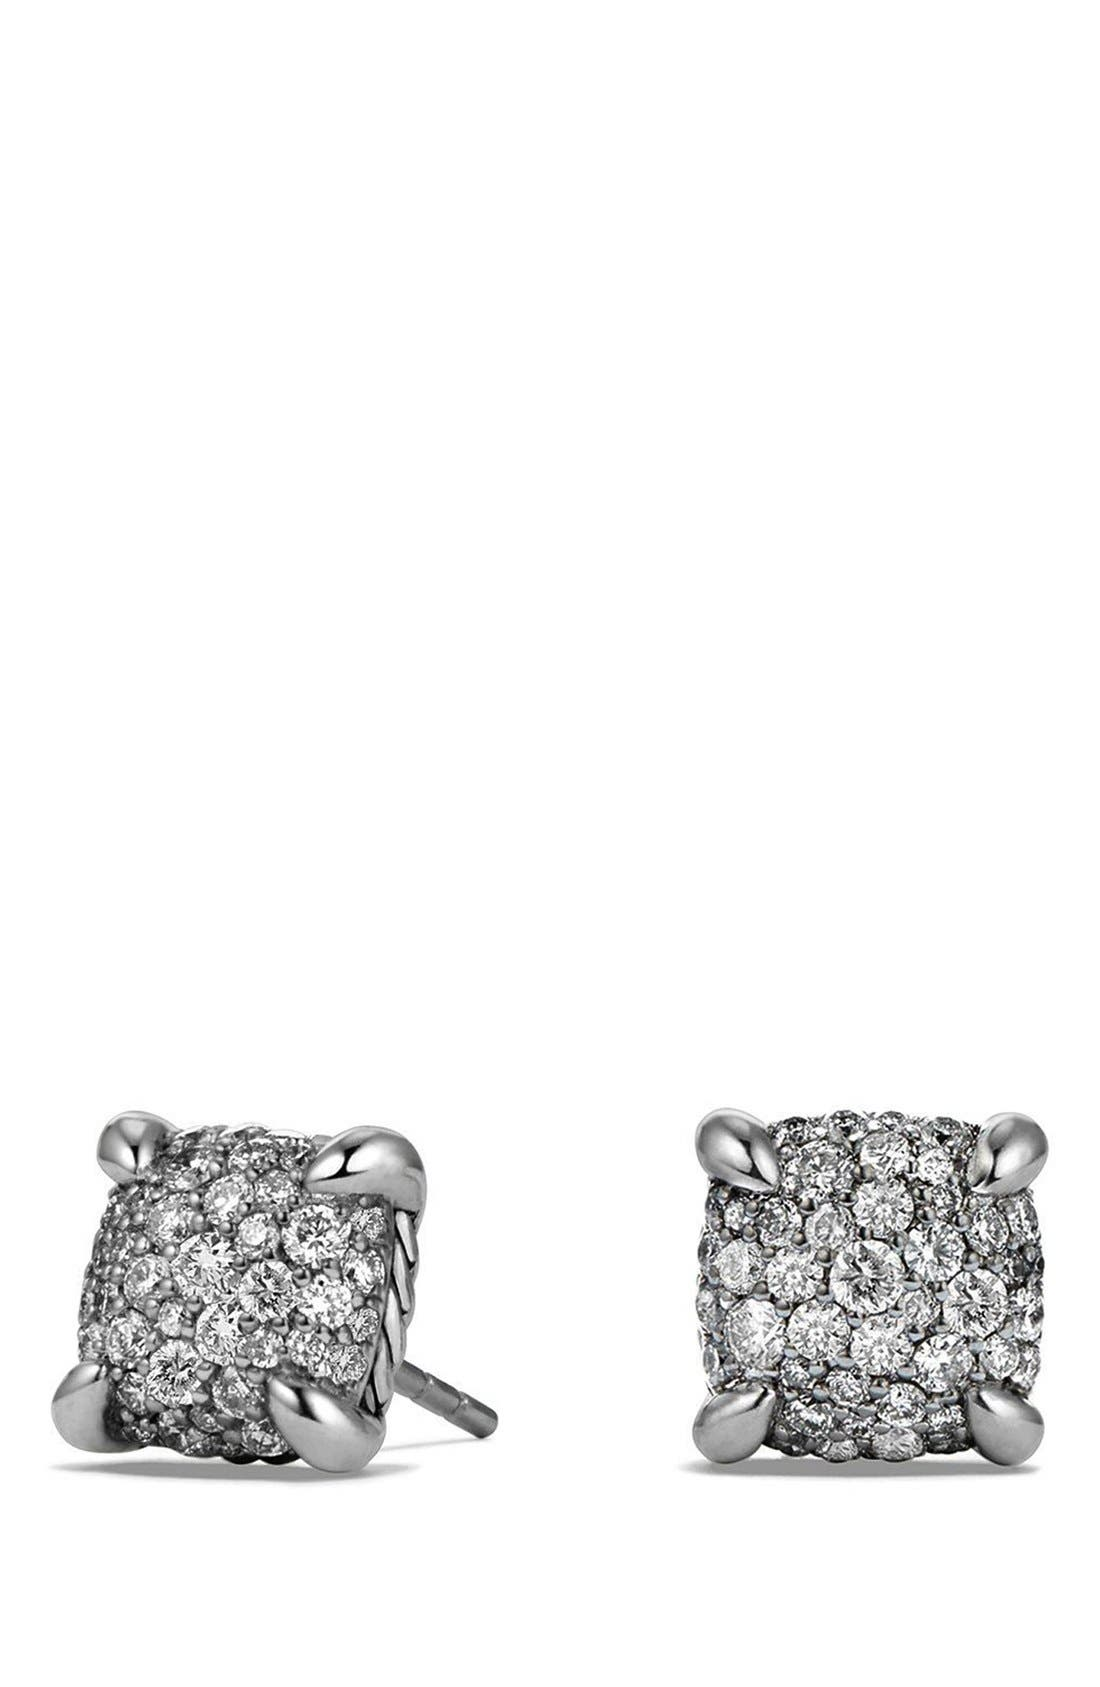 Alternate Image 1 Selected - David Yurman 'Châtelaine' Earrings with Diamonds